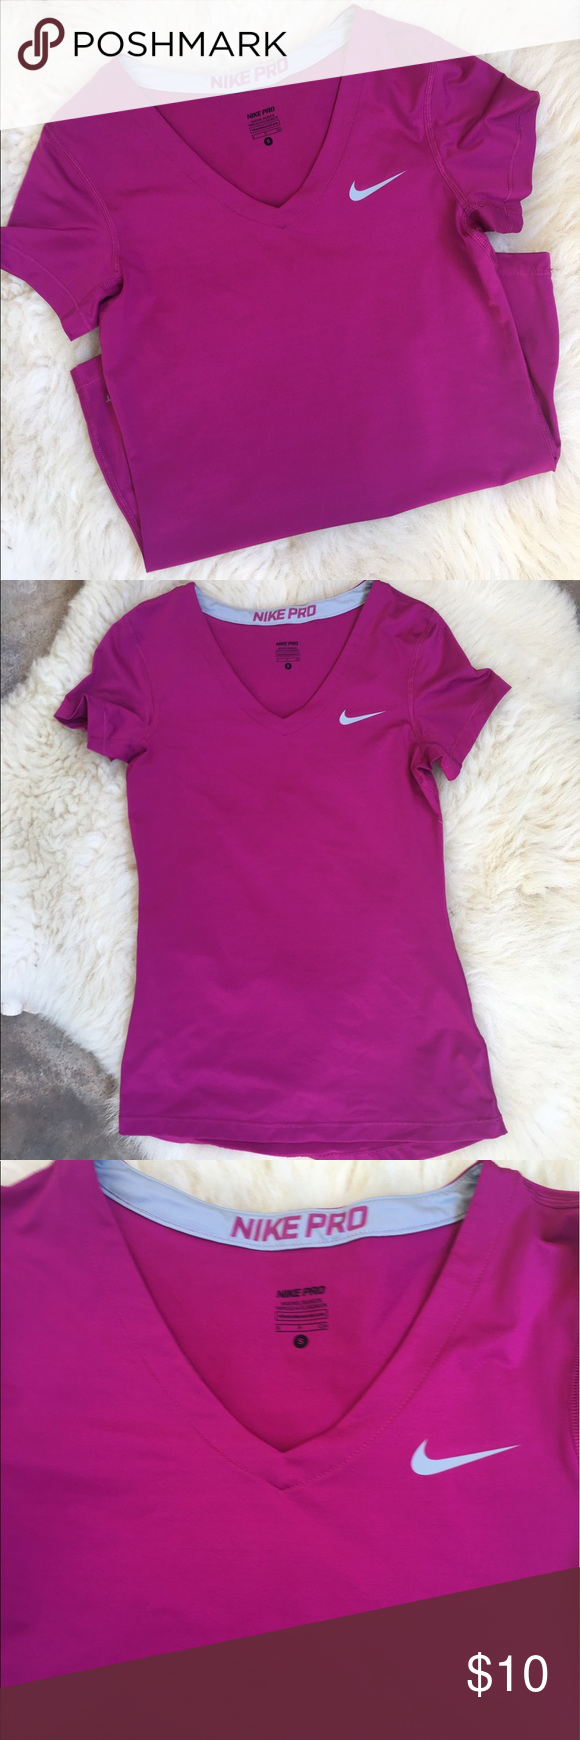 Nike Pro T-shirt 🌺 In like-new condition, Size S. Comes from non-smoking, pet-free house. Nike Tops Tees - Short Sleeve